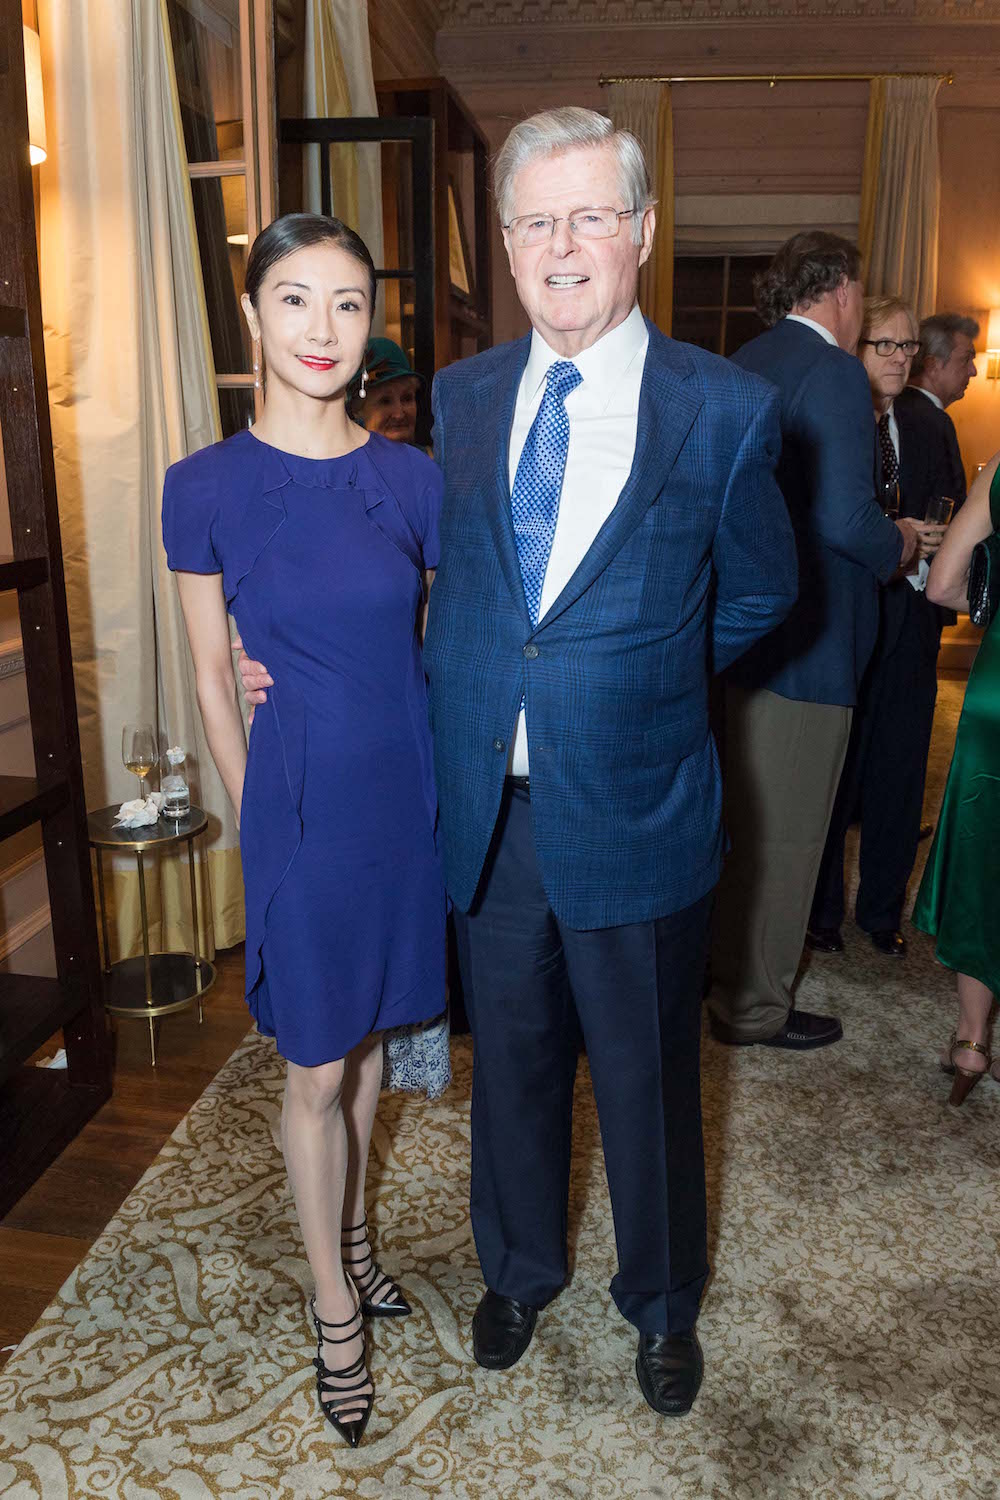 Yuan Yuan Tan and Richard Barker